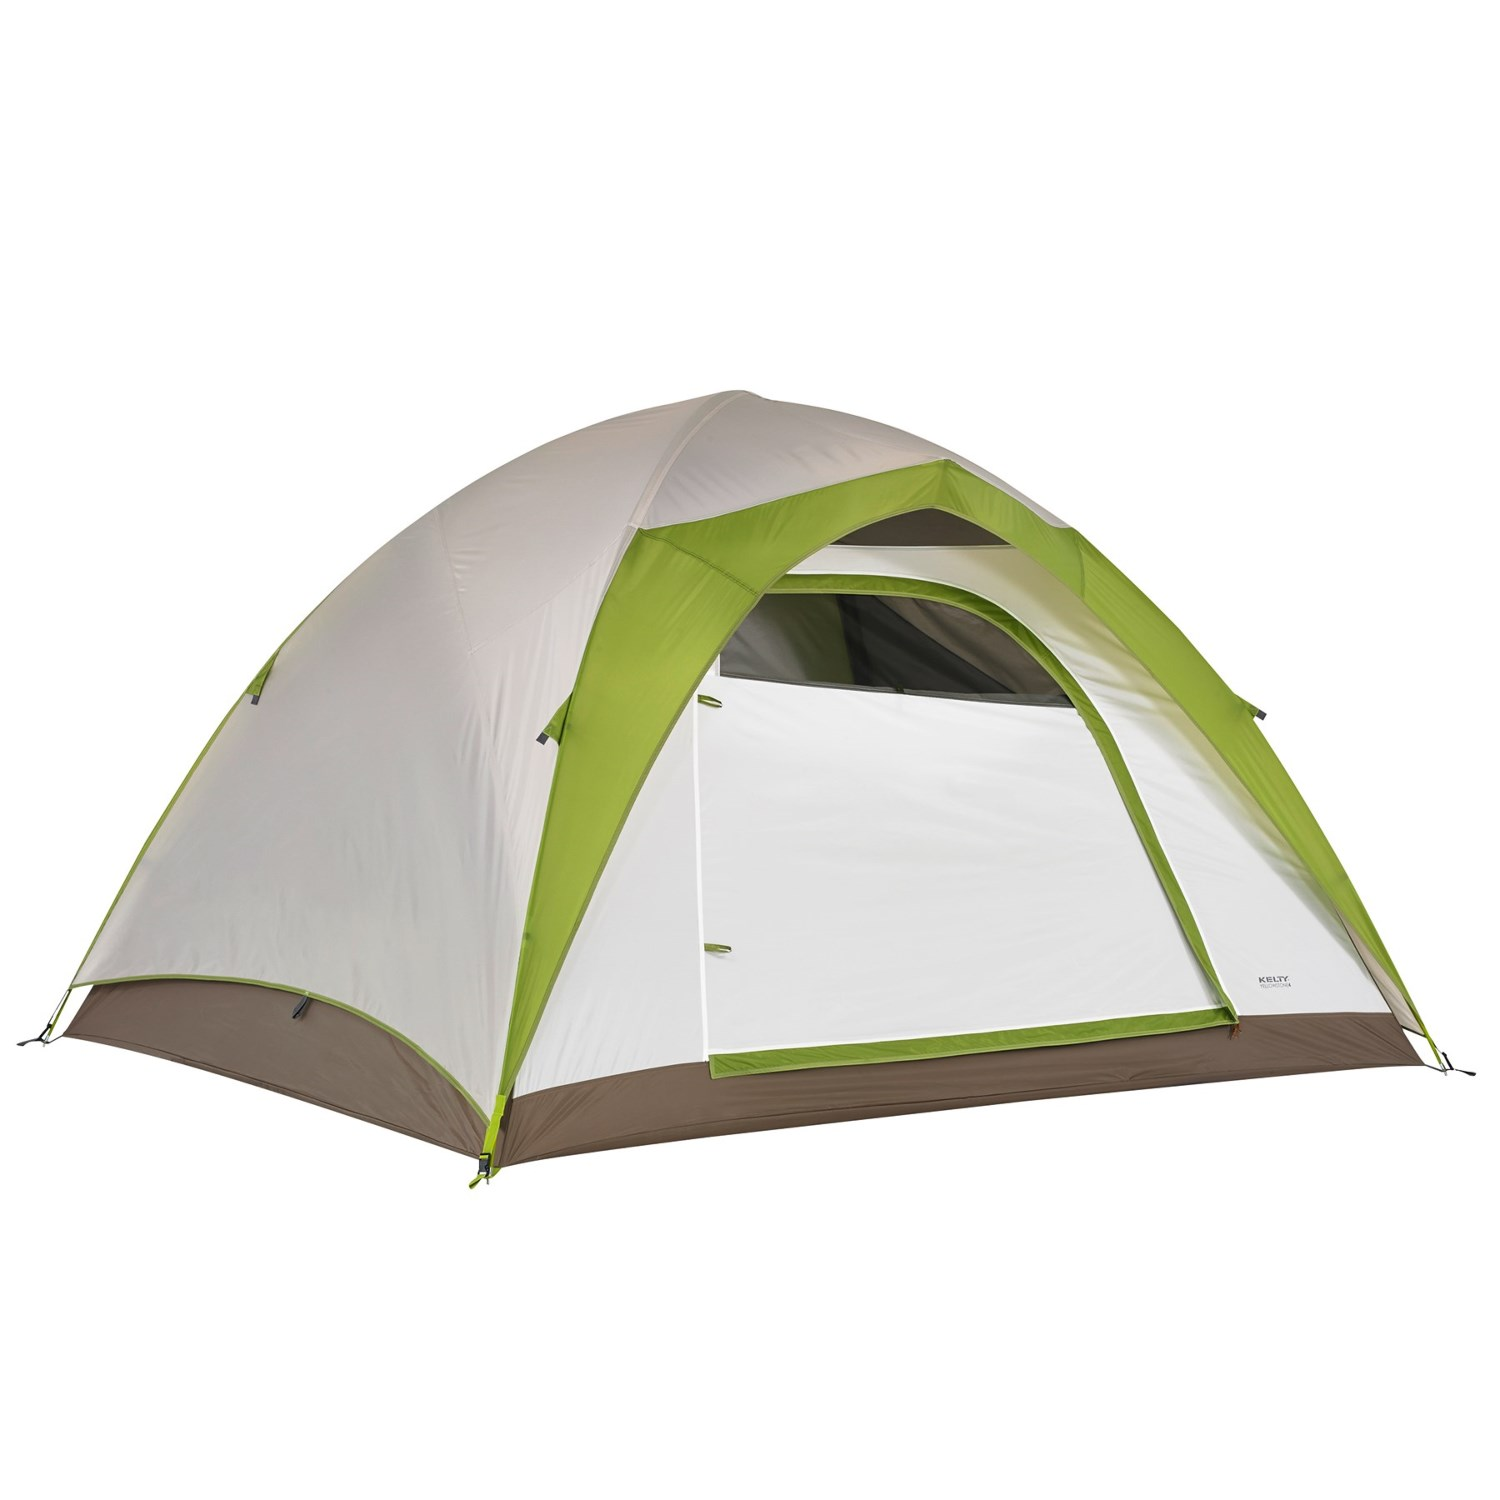 Kelty Yellowstone 4 Tent - 4-Person 3-Season  sc 1 st  Sierra Trading Post & Kelty Yellowstone 4 Tent - 4-Person 3-Season - Save 57%